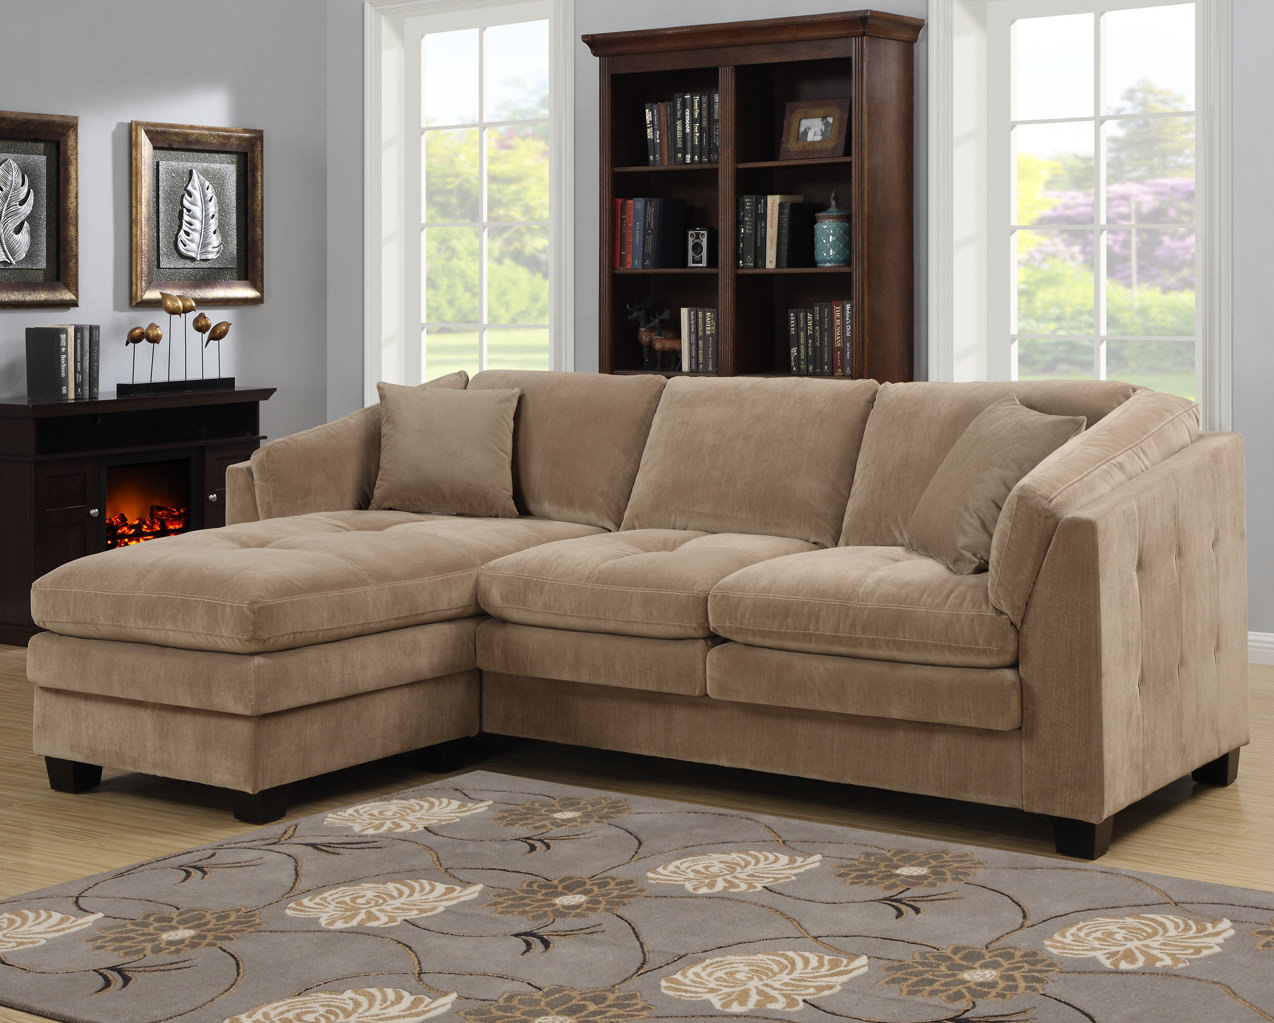 Lamont 9733 Modular Sectional Sofa by Homelegance w/Options